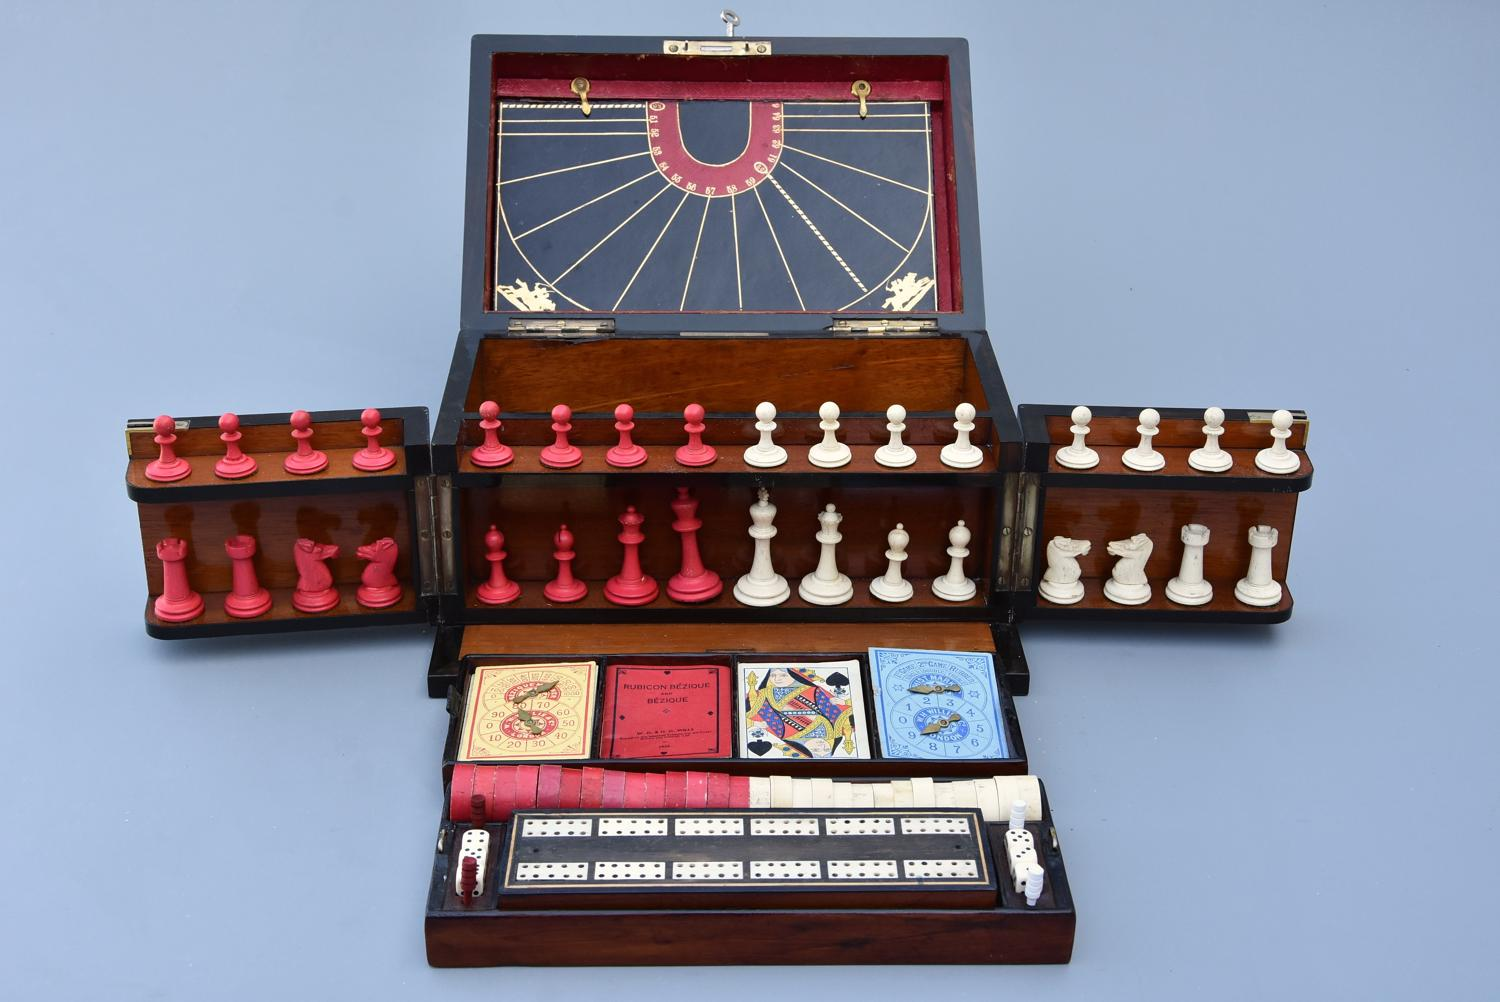 19thc coromandel fitted games compendium by 'Leuchars & Son, London'